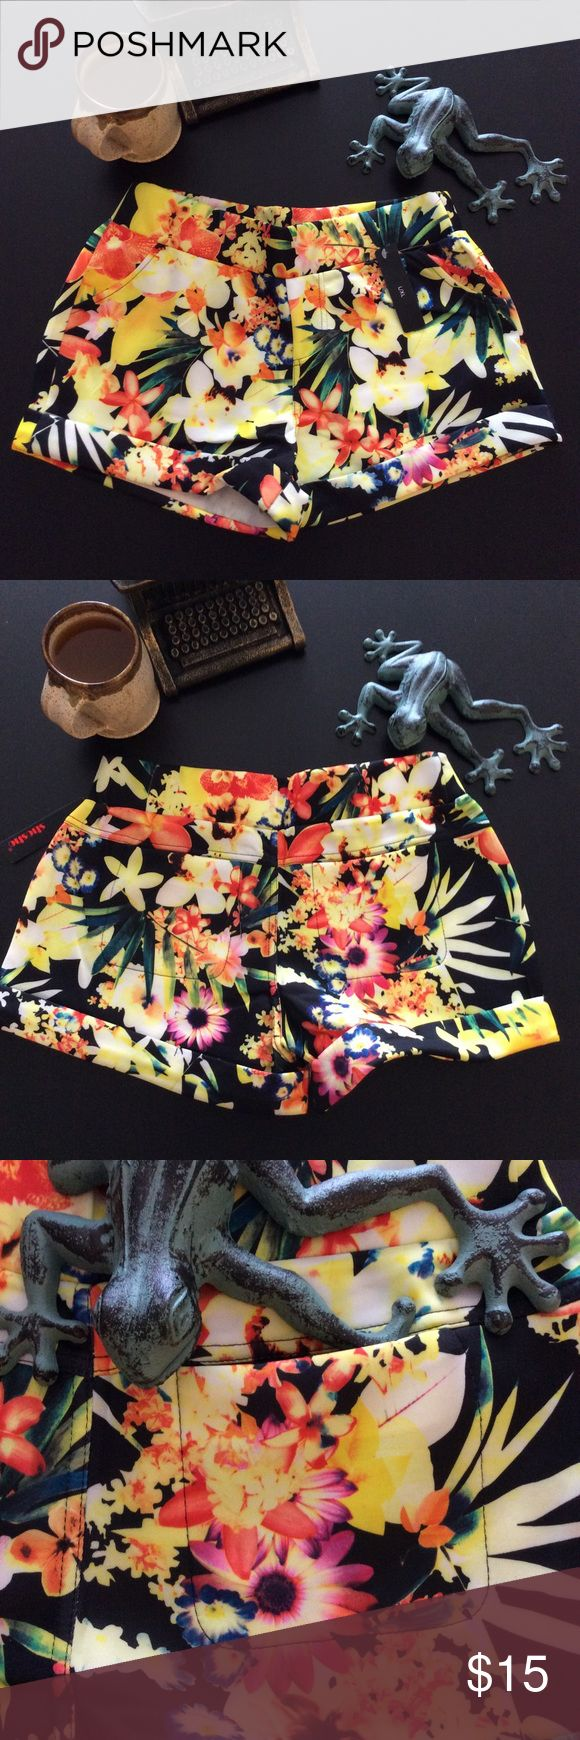 PRICE DROP! Tropical Scuba Shorts These mid-rise tropical print shorts go great with coordinating tanks for a statement look, or try a loose neutral t-shirt to balance the color palette. Features elastic waist, sewn-in cuffs, real back pockets, and faux front pockets. Main colors are black, bright yellow, pink, and orange. 95% polyester/5% spandex. Don't hesitate to ask if you have any questions! Boutique brand Shorts